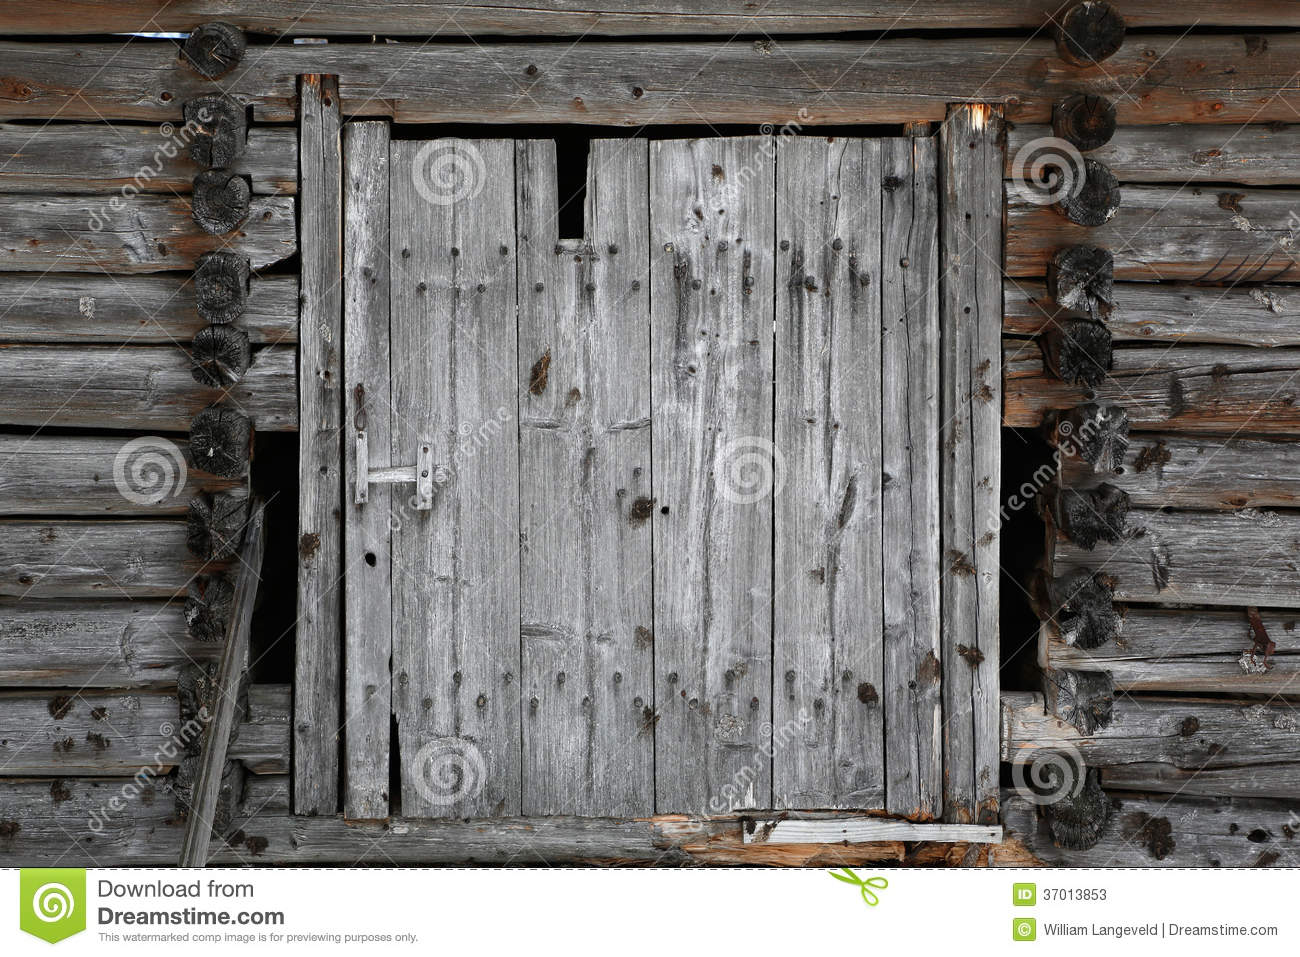 Vieille porte de grange brune et sale photos stock image for Vieille porte de ferme